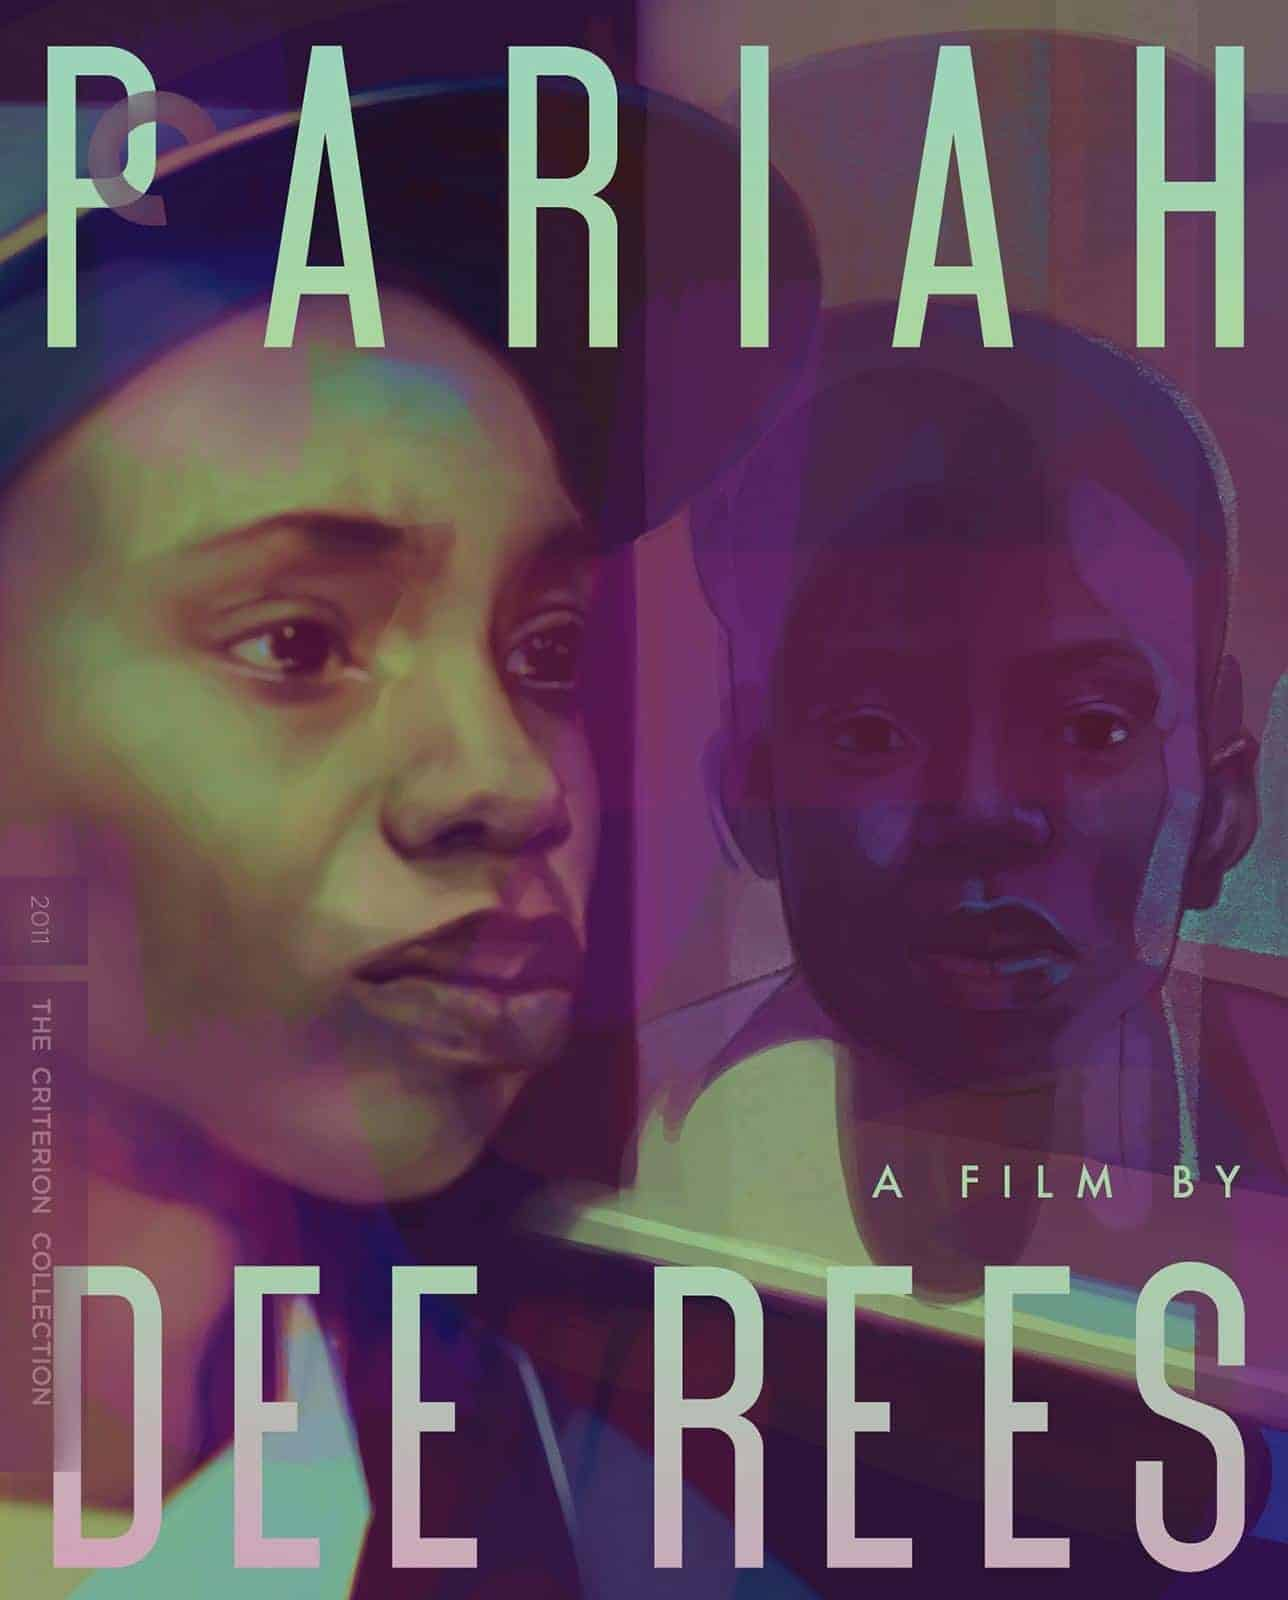 Pariah The Criterion Collection Blu-ray Cover